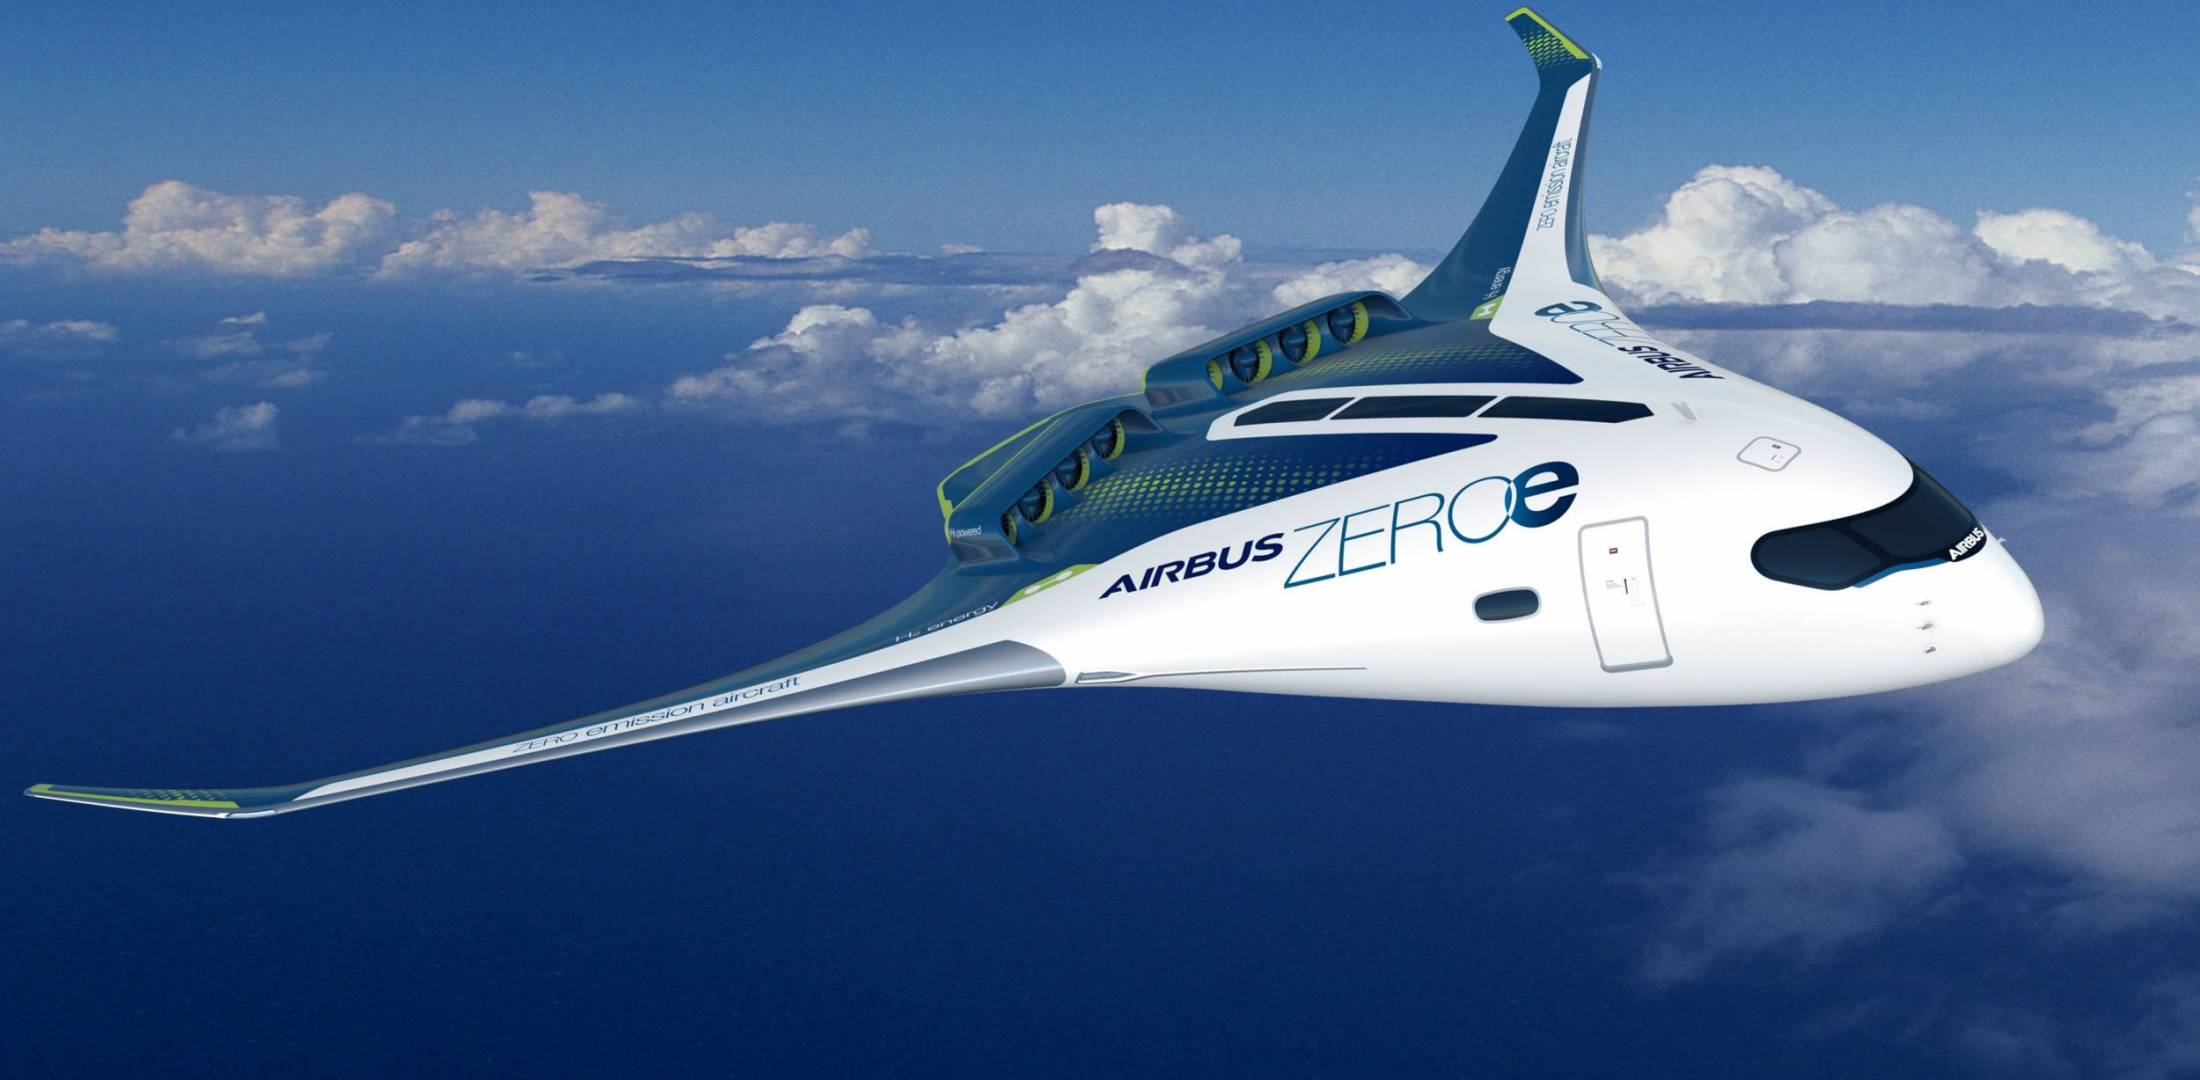 Airbus ZeroE blended wing concept